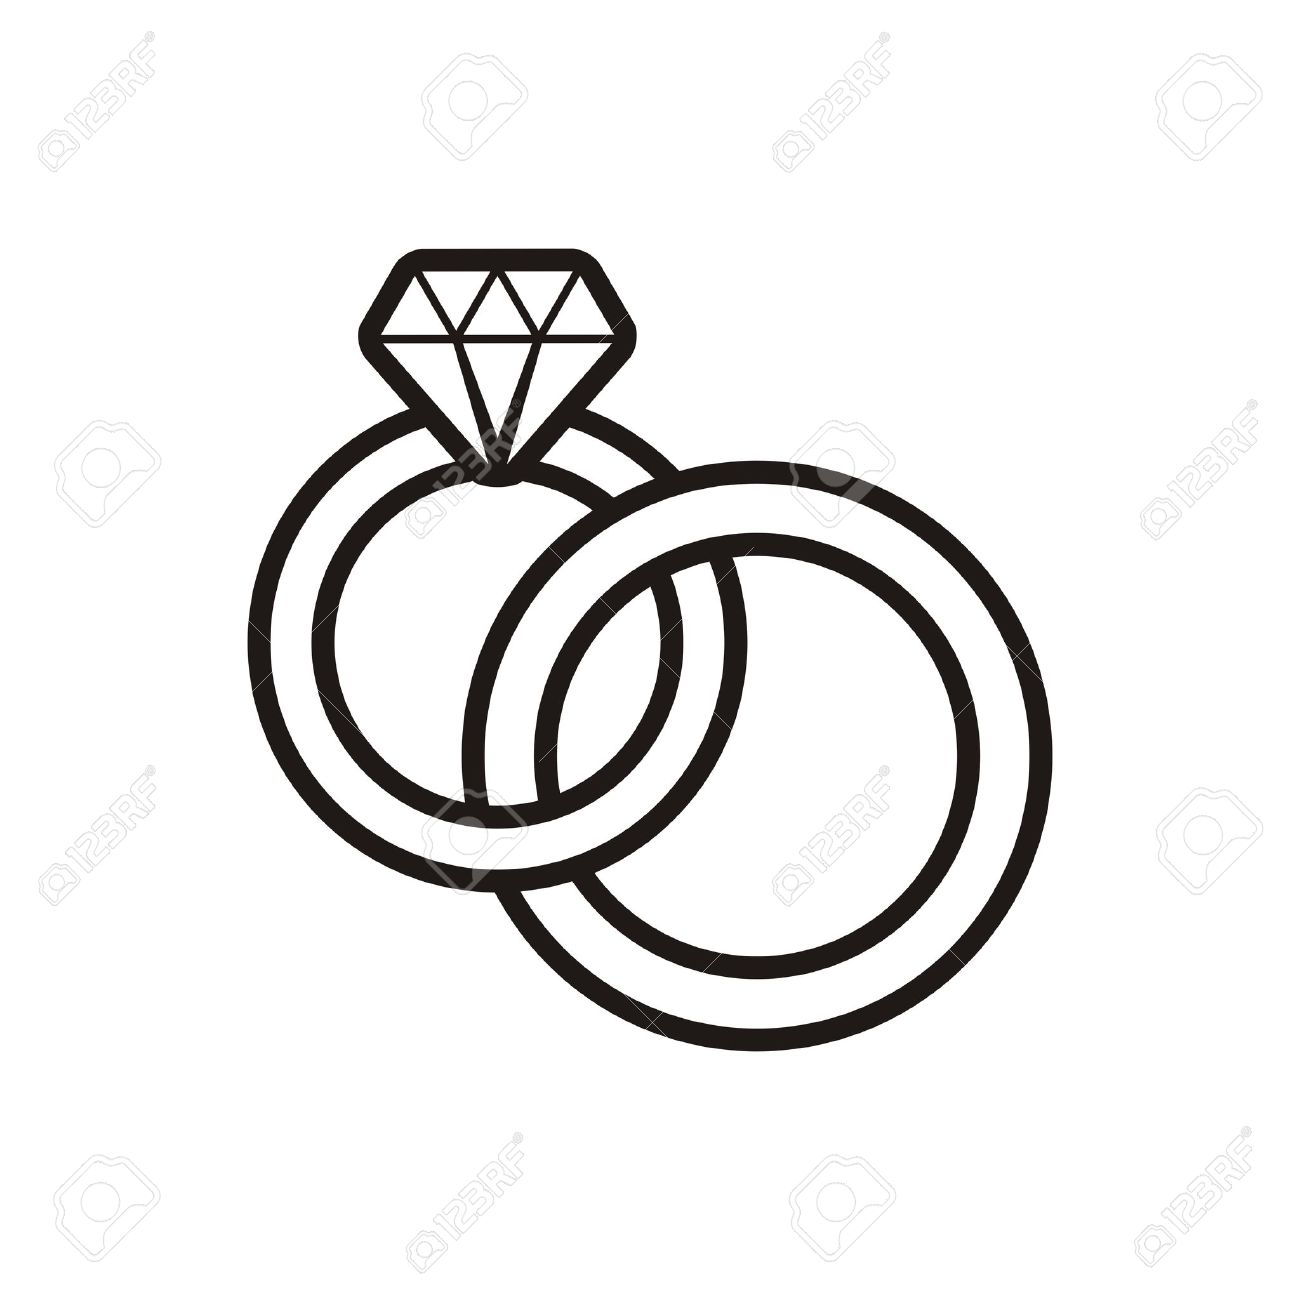 Wedding rings vector  Black Vector Wedding Rings Outline Icon On White Royalty Free ...